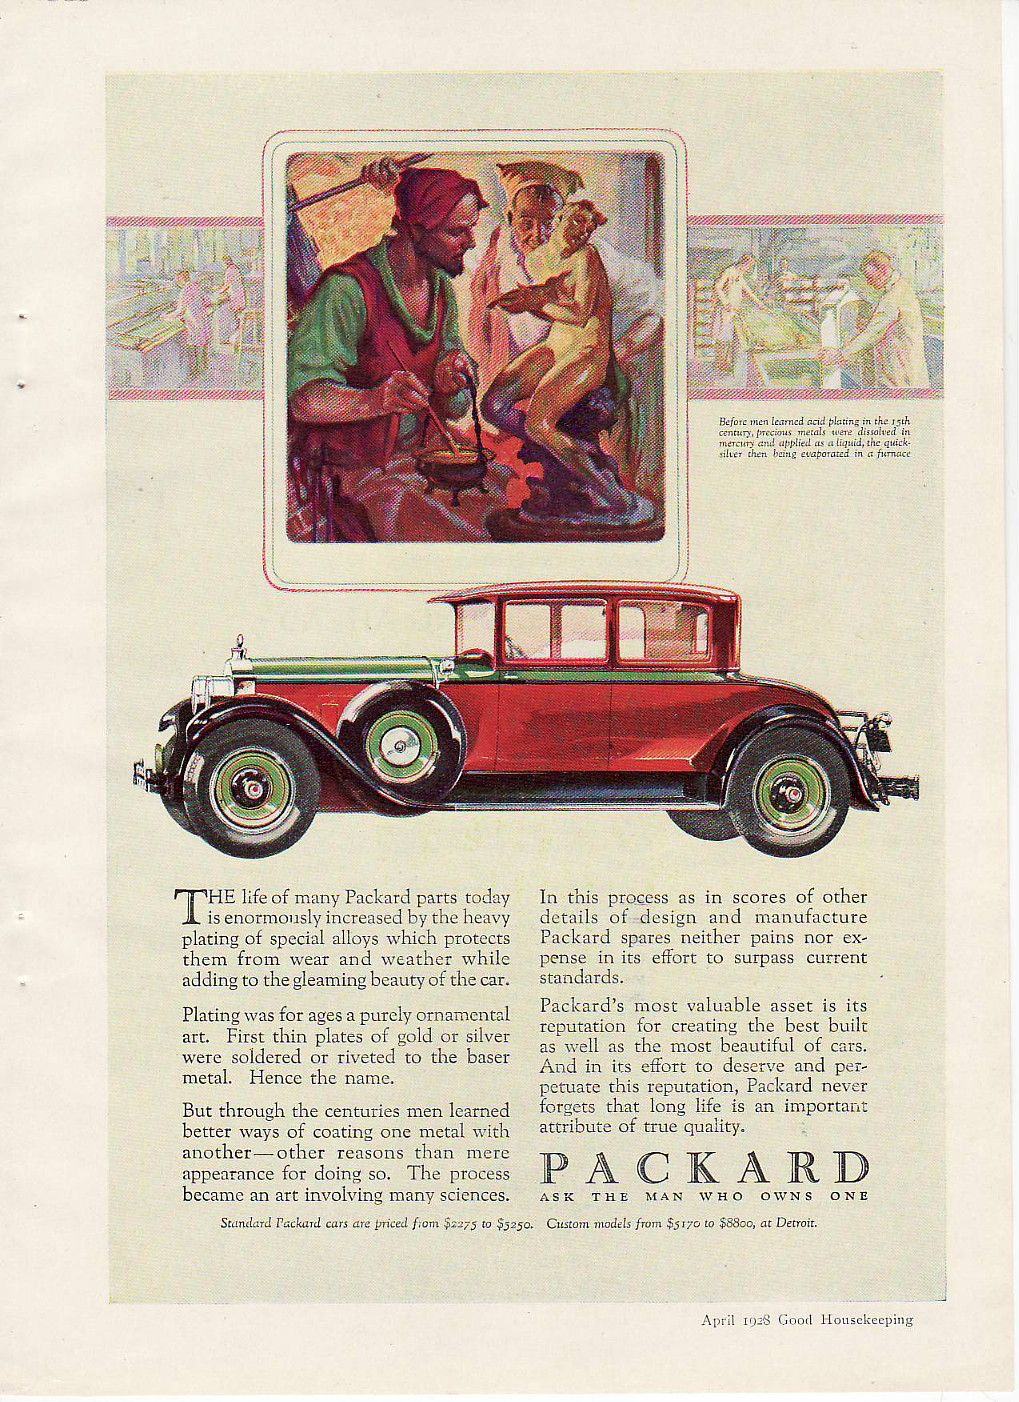 Vintage Deco Ad Packard Ask The Man Who Owns One (Image1) | Art Deco ...